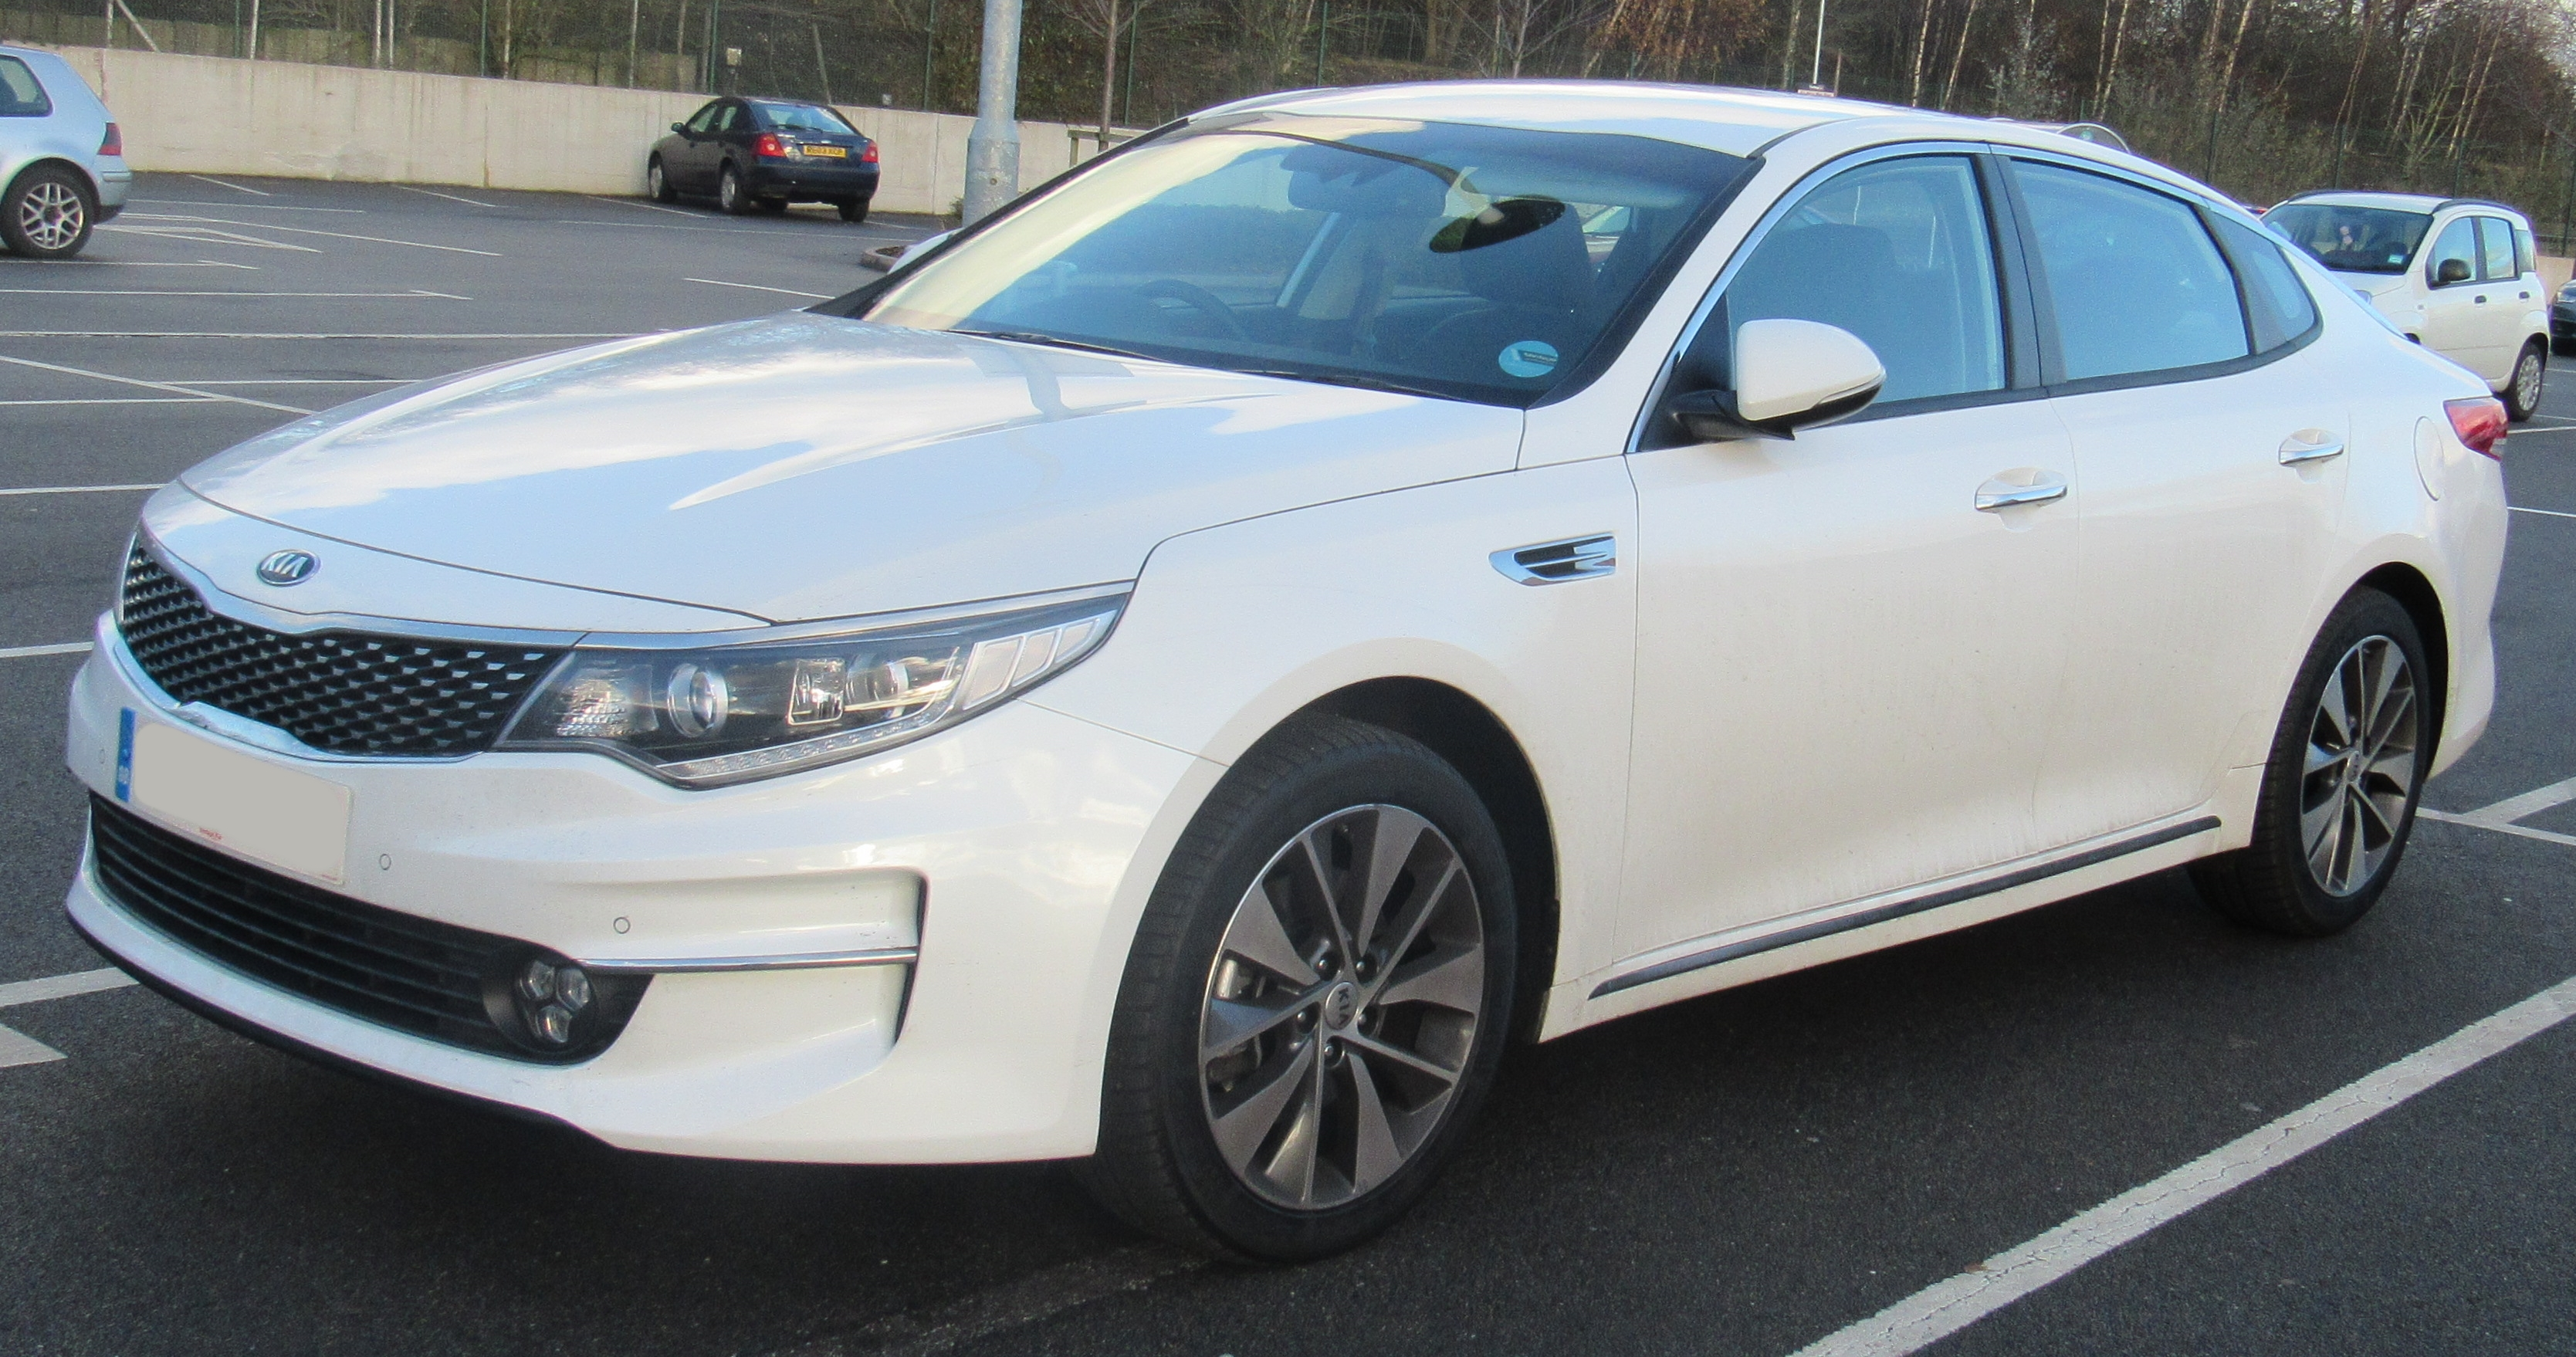 metallic groovecar lx composite optima research large bright silver hybrid sedan kia